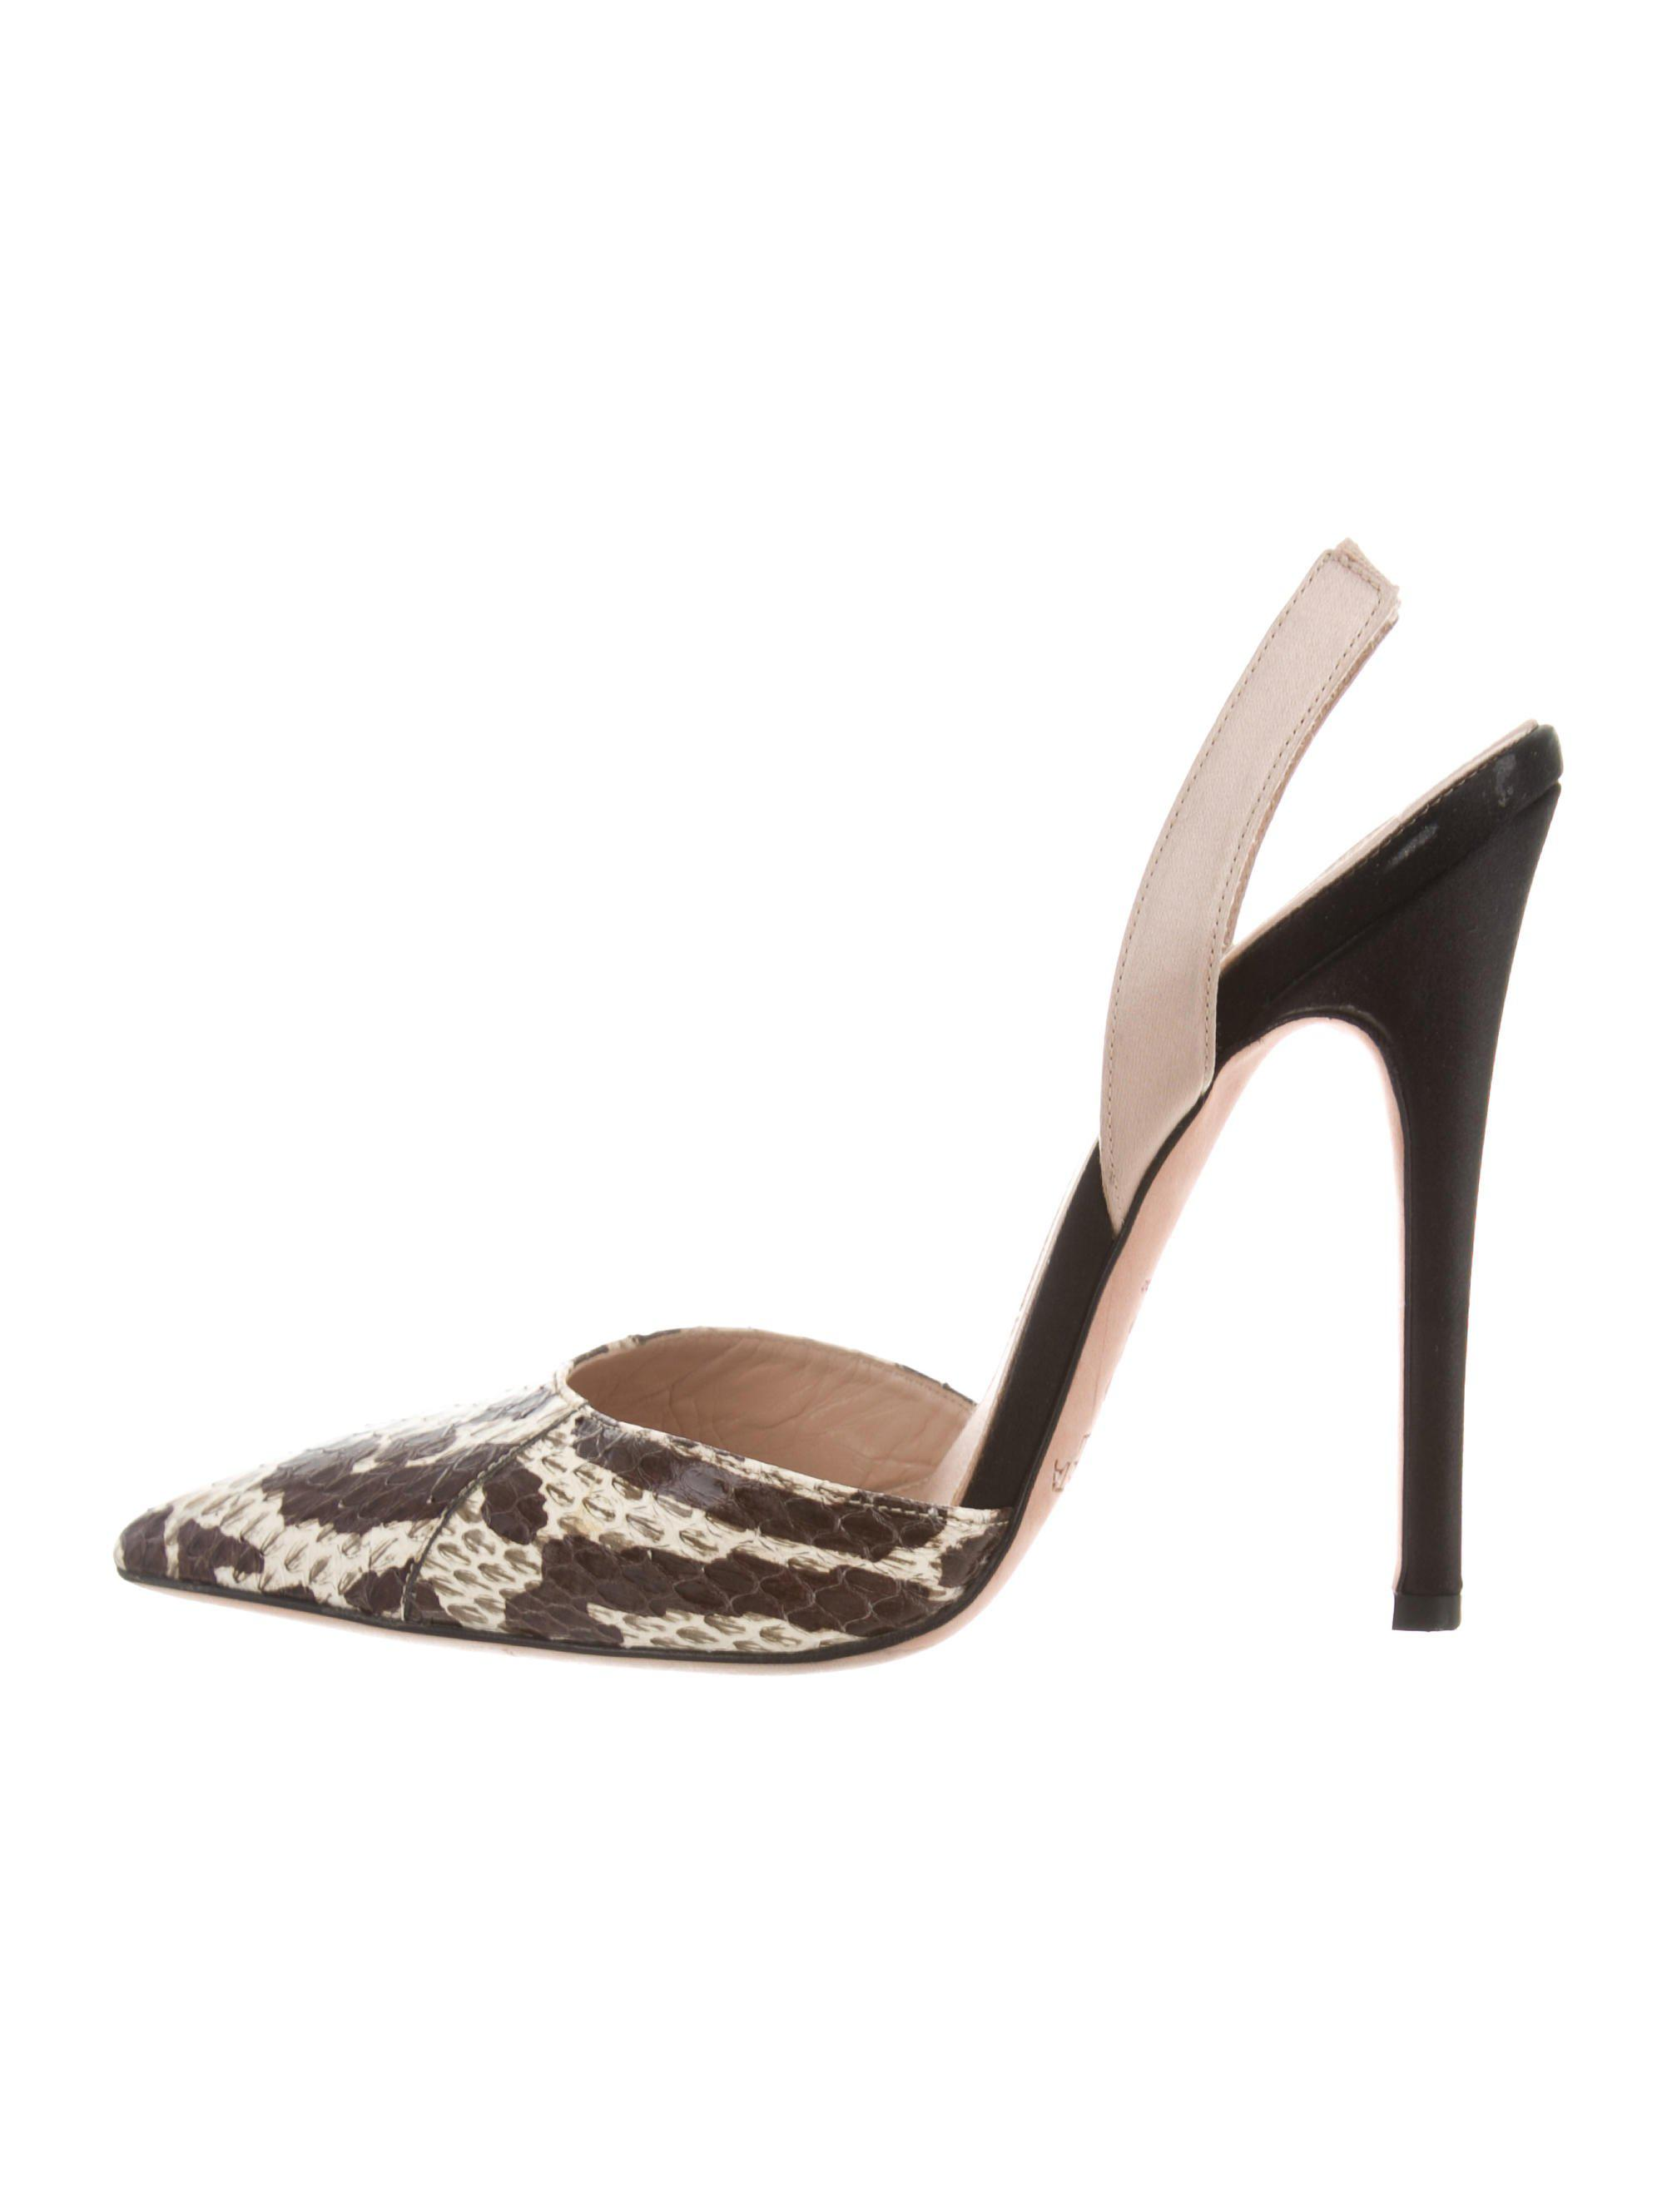 41b3cc441ed Lyst - Giambattista Valli Python Slingback Pumps in Brown